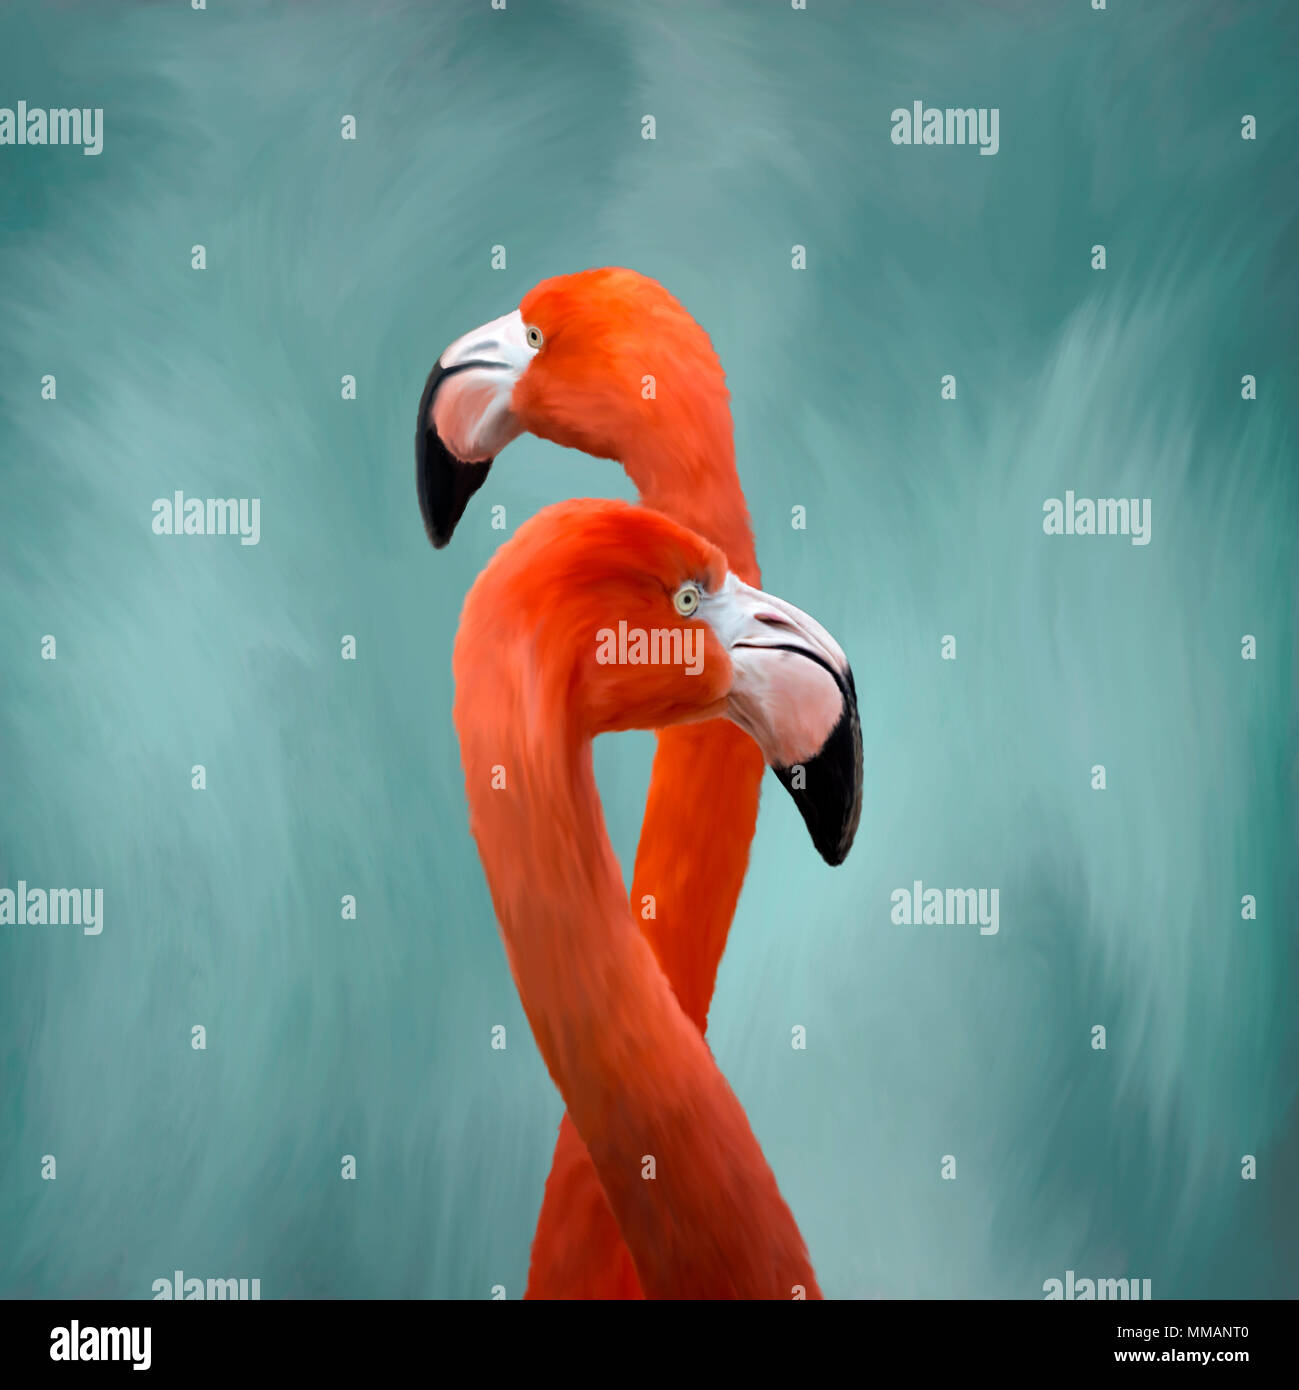 Oil painting of elegant Flamingo birds standing tall against a soft  blue and white background. - Stock Image